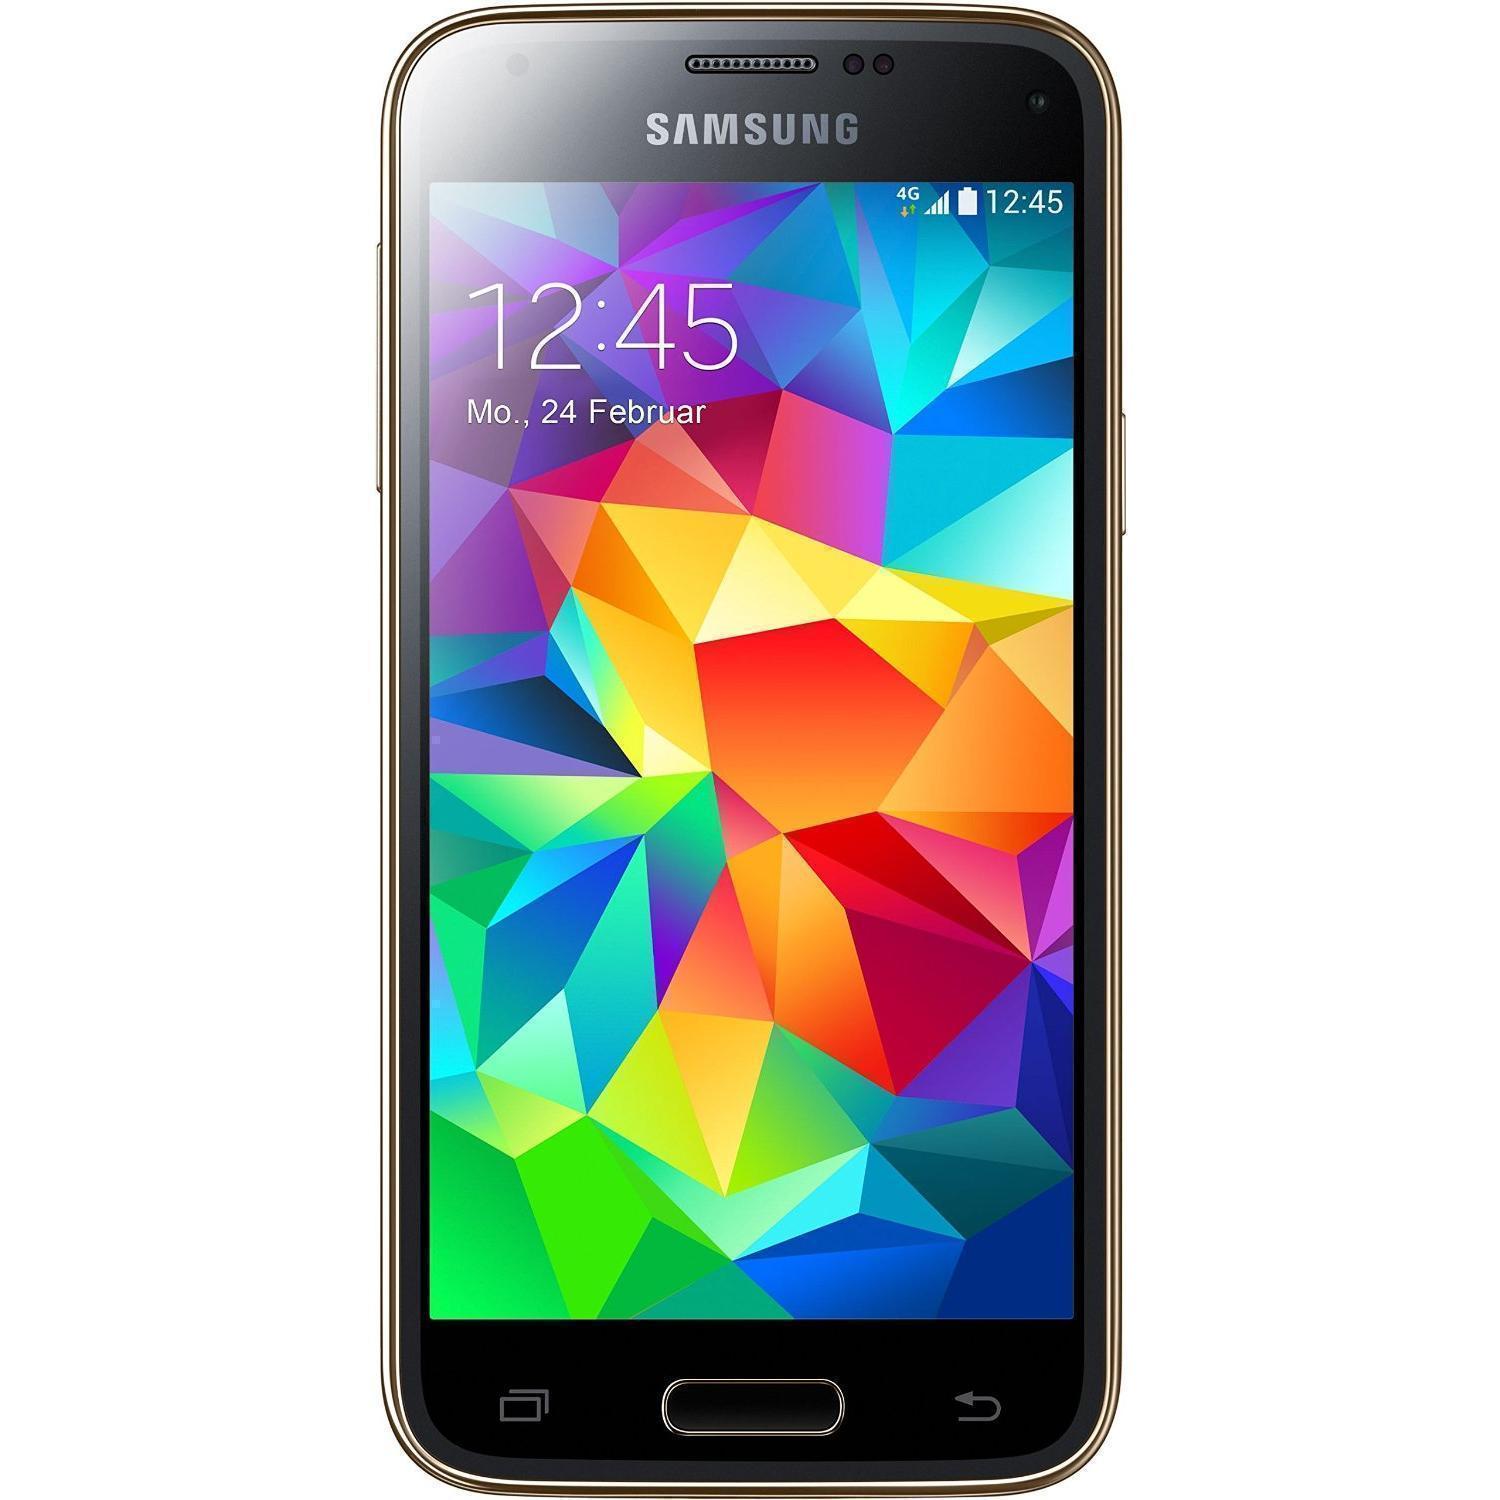 Samsung Galaxy S5 Mini 16 Gb G800F 4G - Oro - Libre